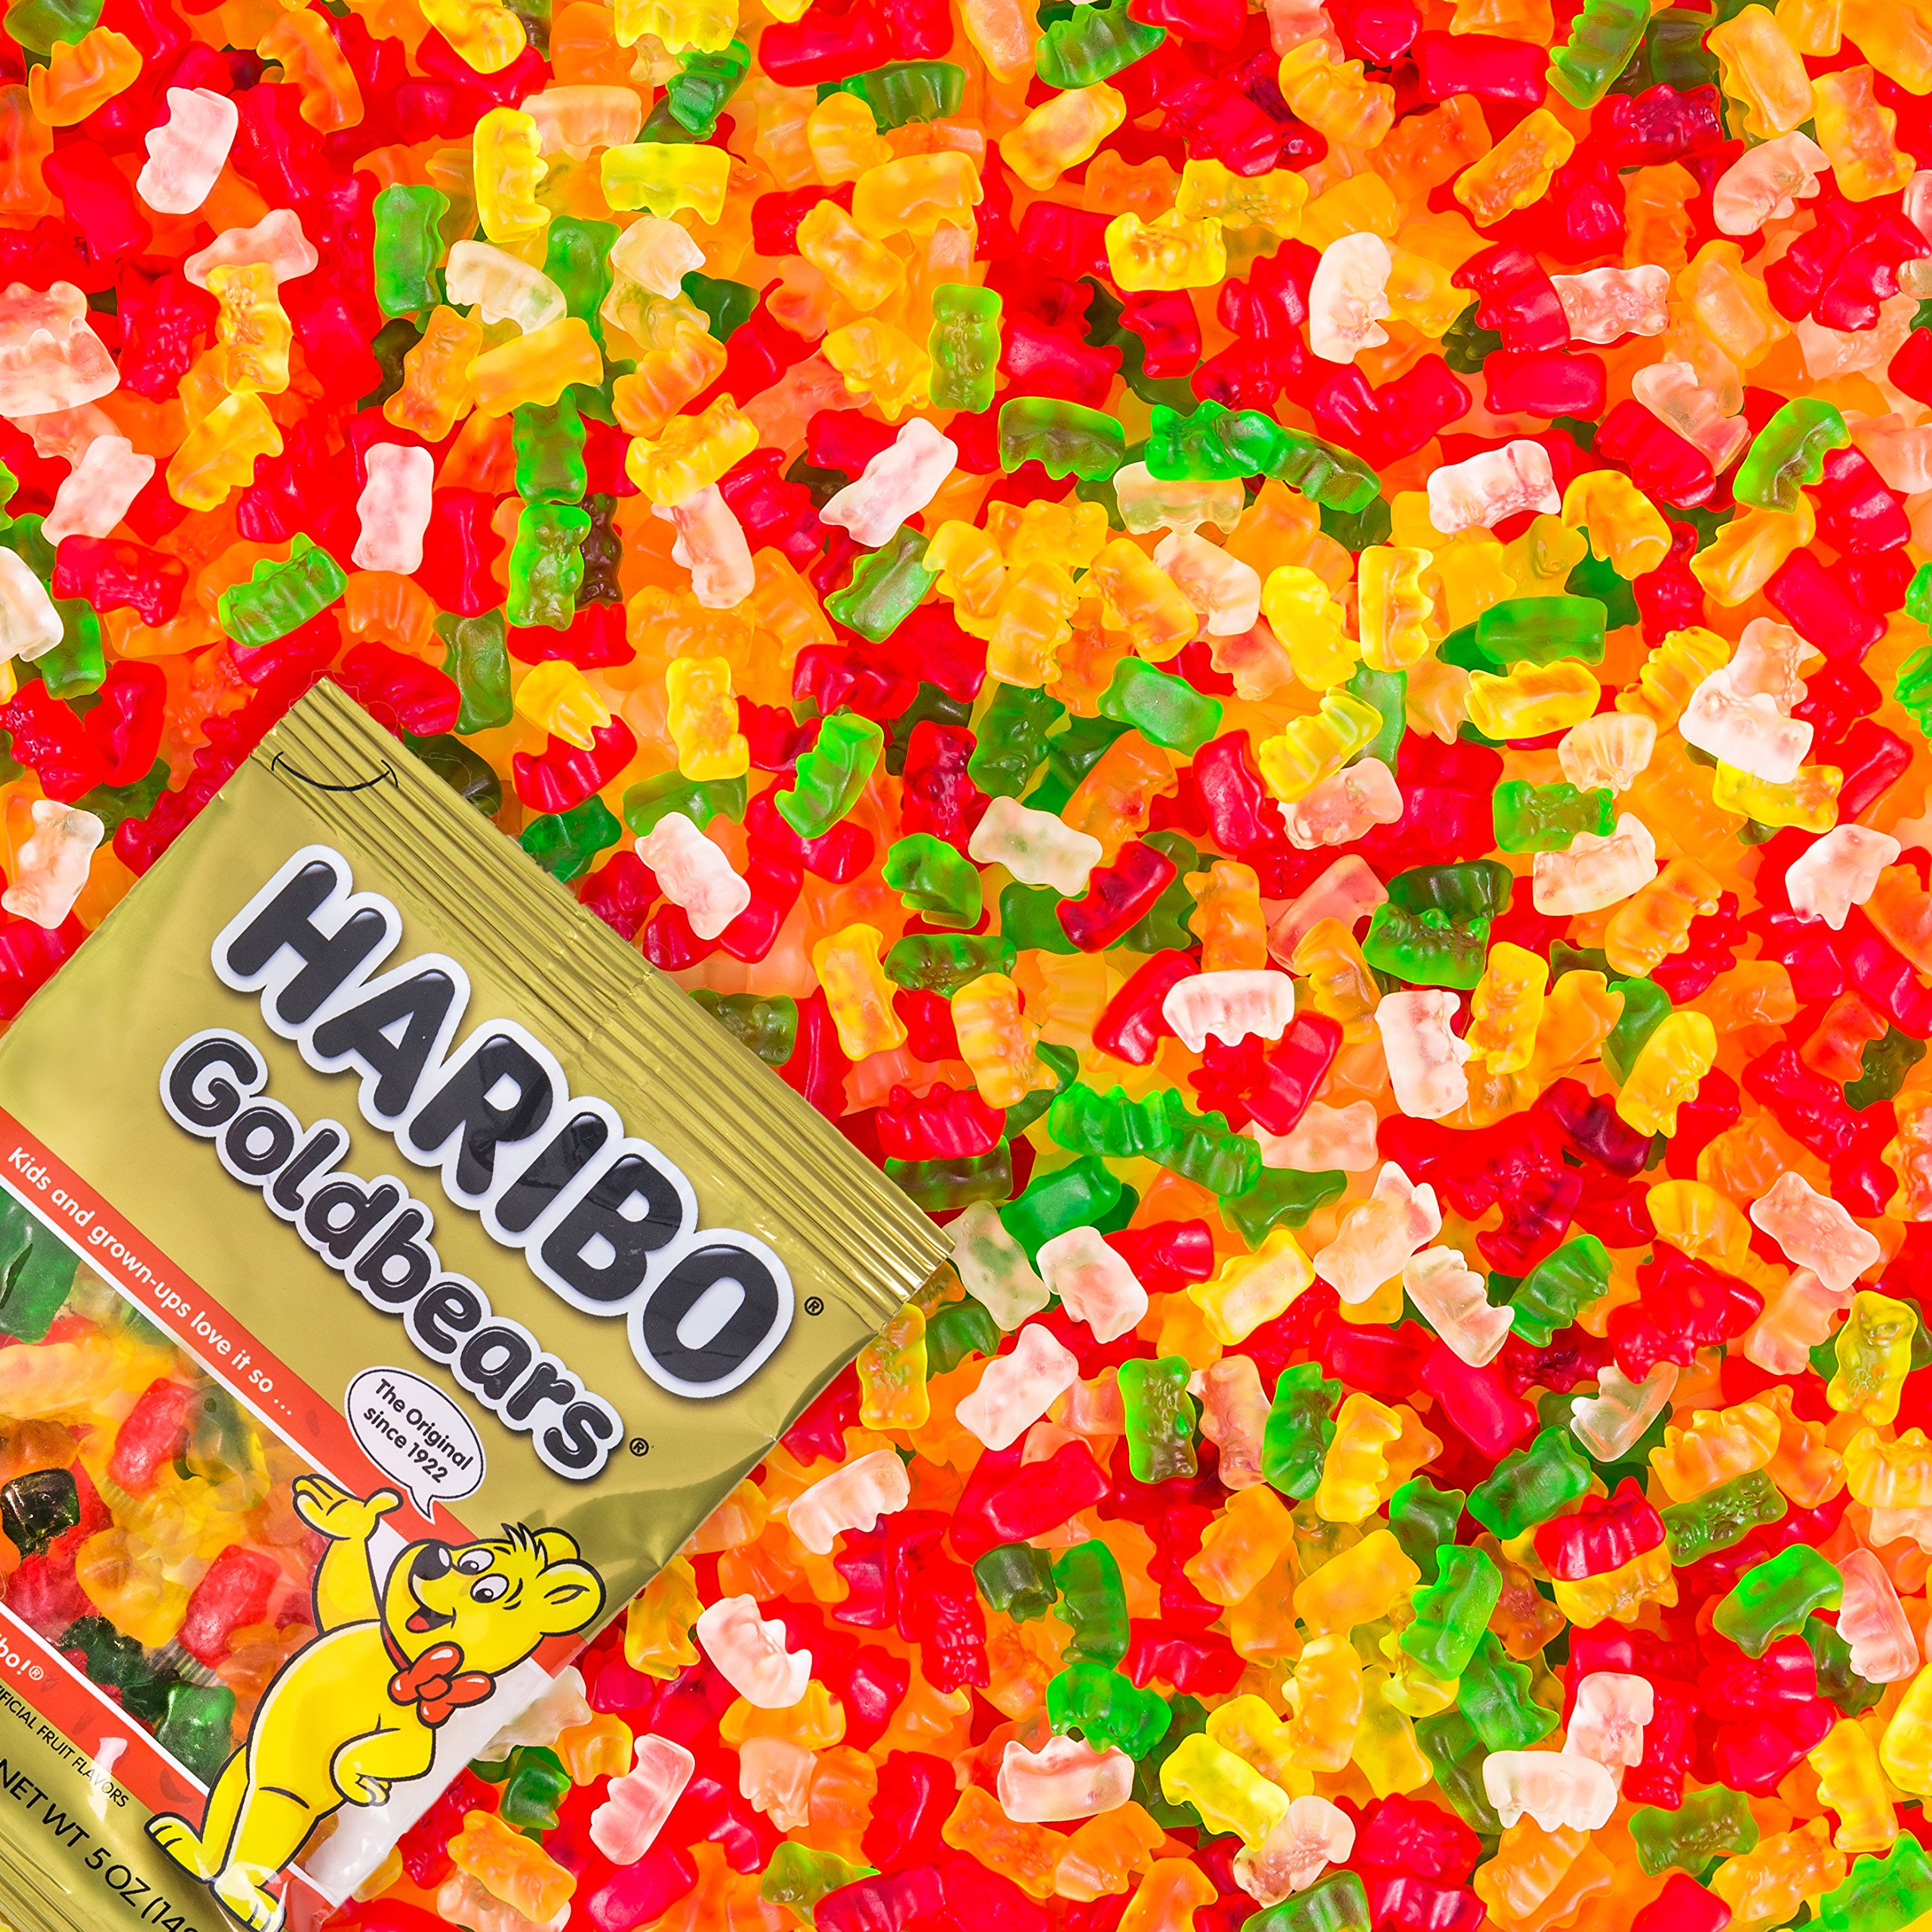 Haribo Goldbears Gummi Candy, 14 oz  (Pack of 12) by Haribo (Image #2)